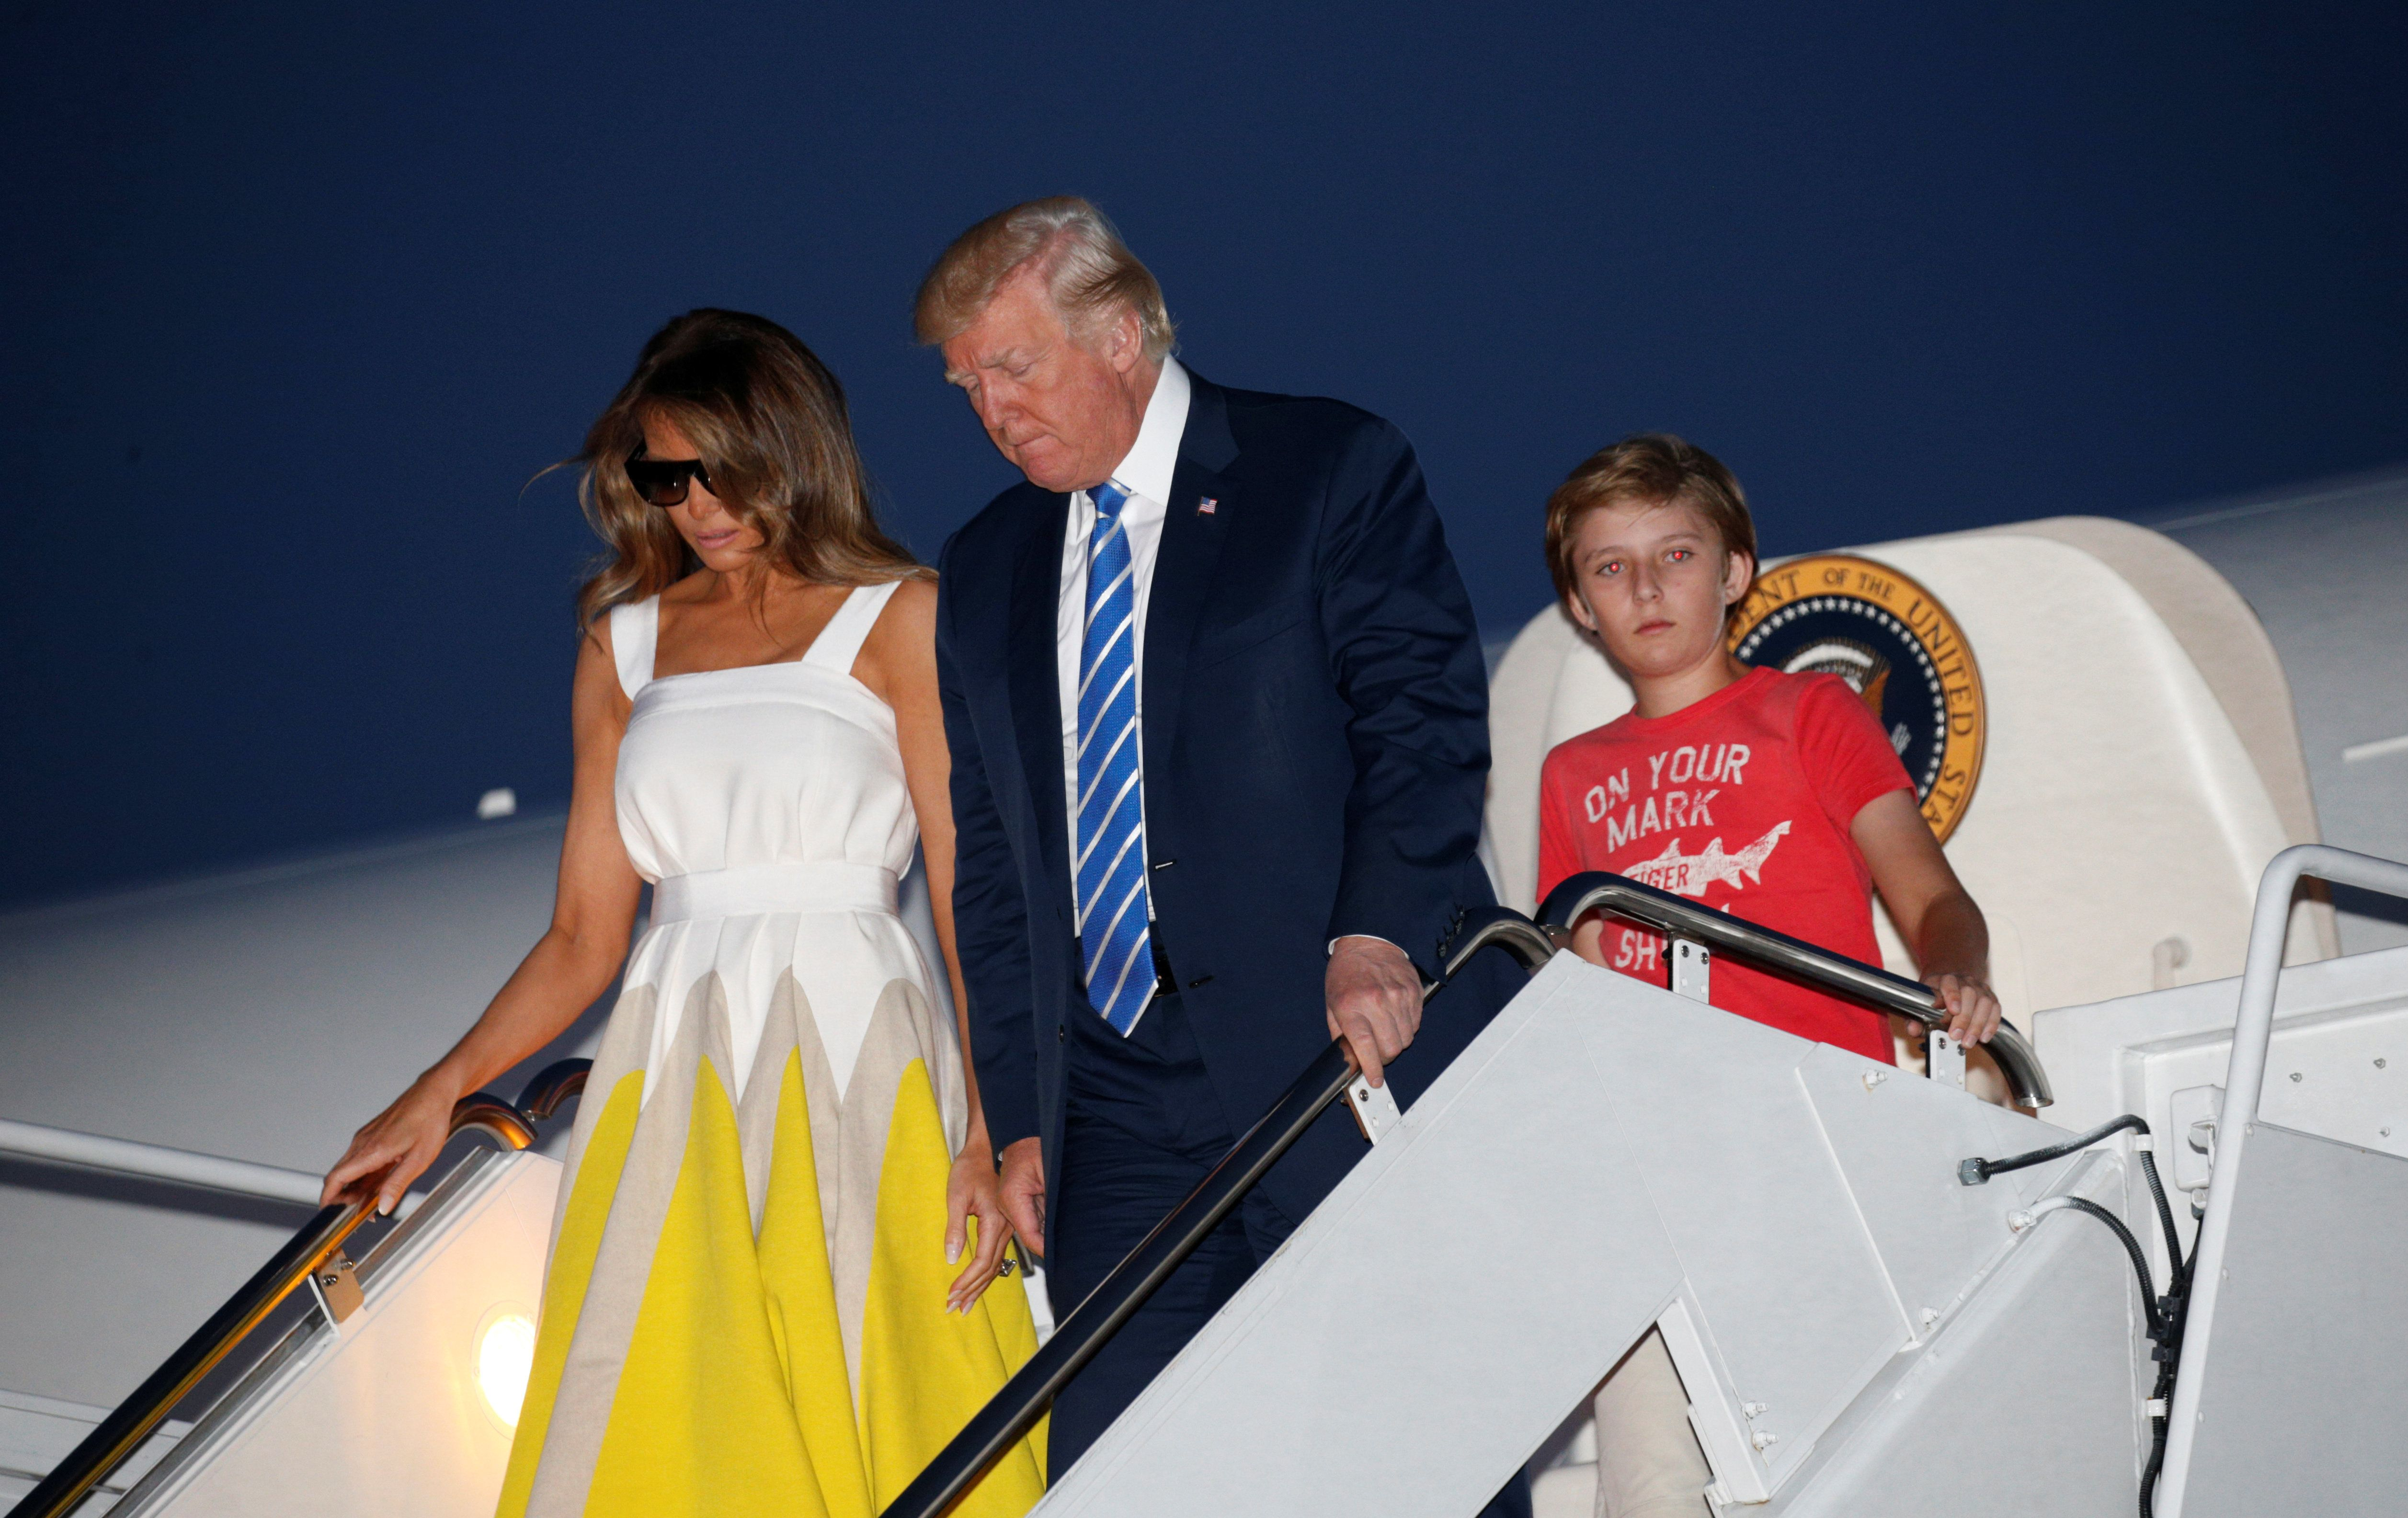 U.S. President Donald Trump arrives at Joint Base Andrews with his wife Melania and son Barron in Maryland, U.S., August 20,  2017.  REUTERS/Kevin Lamarque